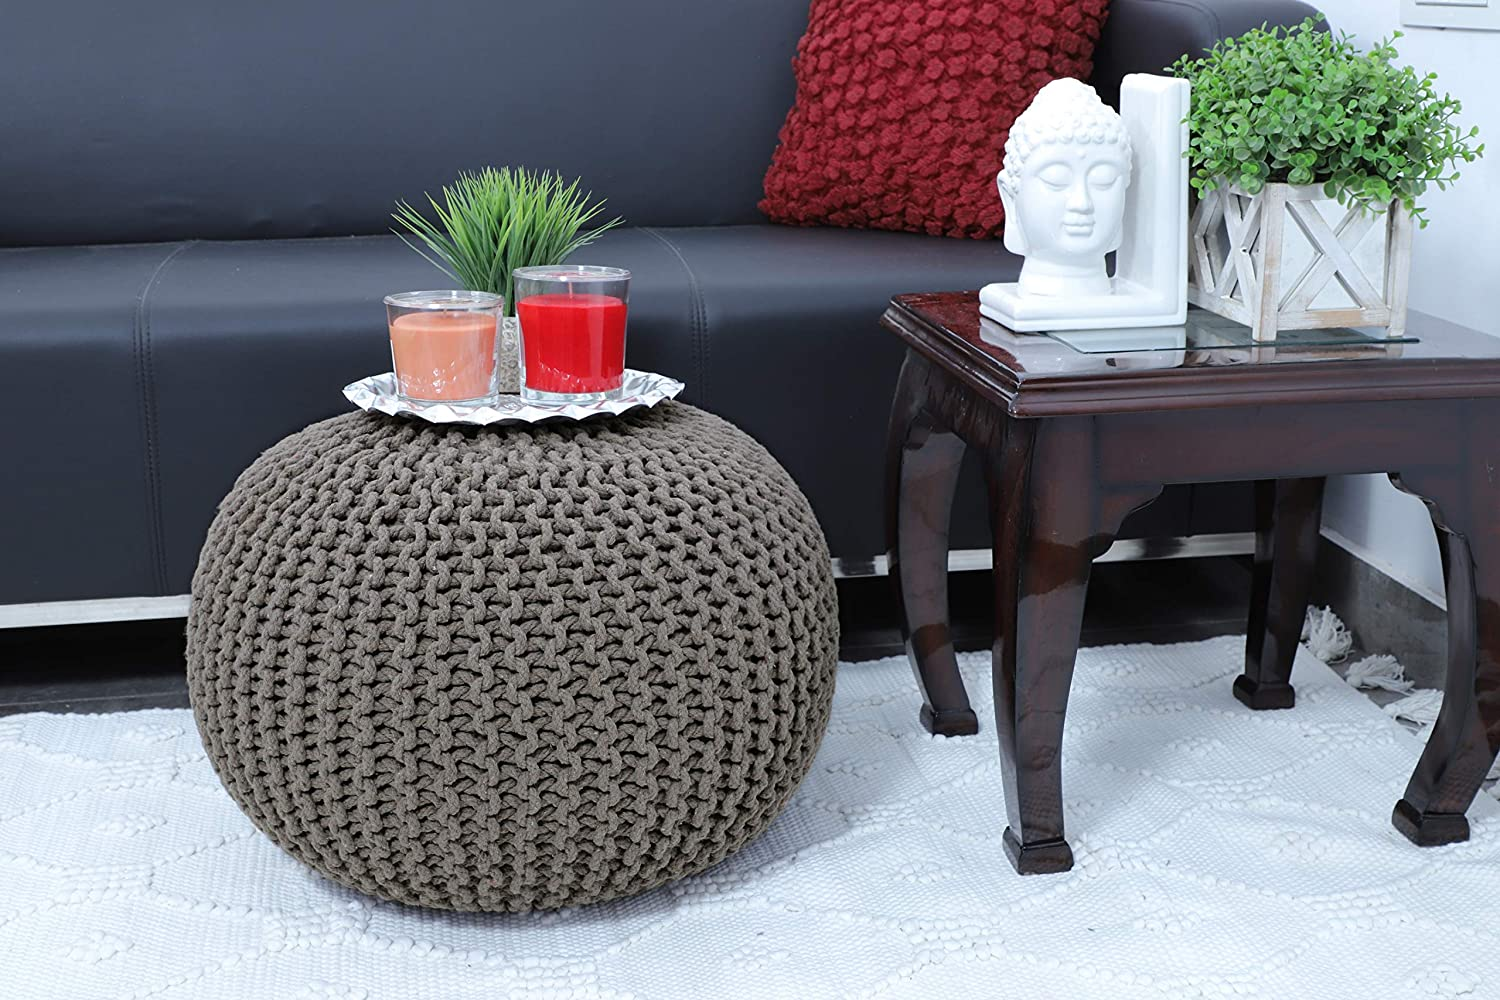 Frenish Décor Hand Knitted Cotton Ottoman Pouf Footrest 20x20x14 INCH, Living Room Accent seat (Beige)